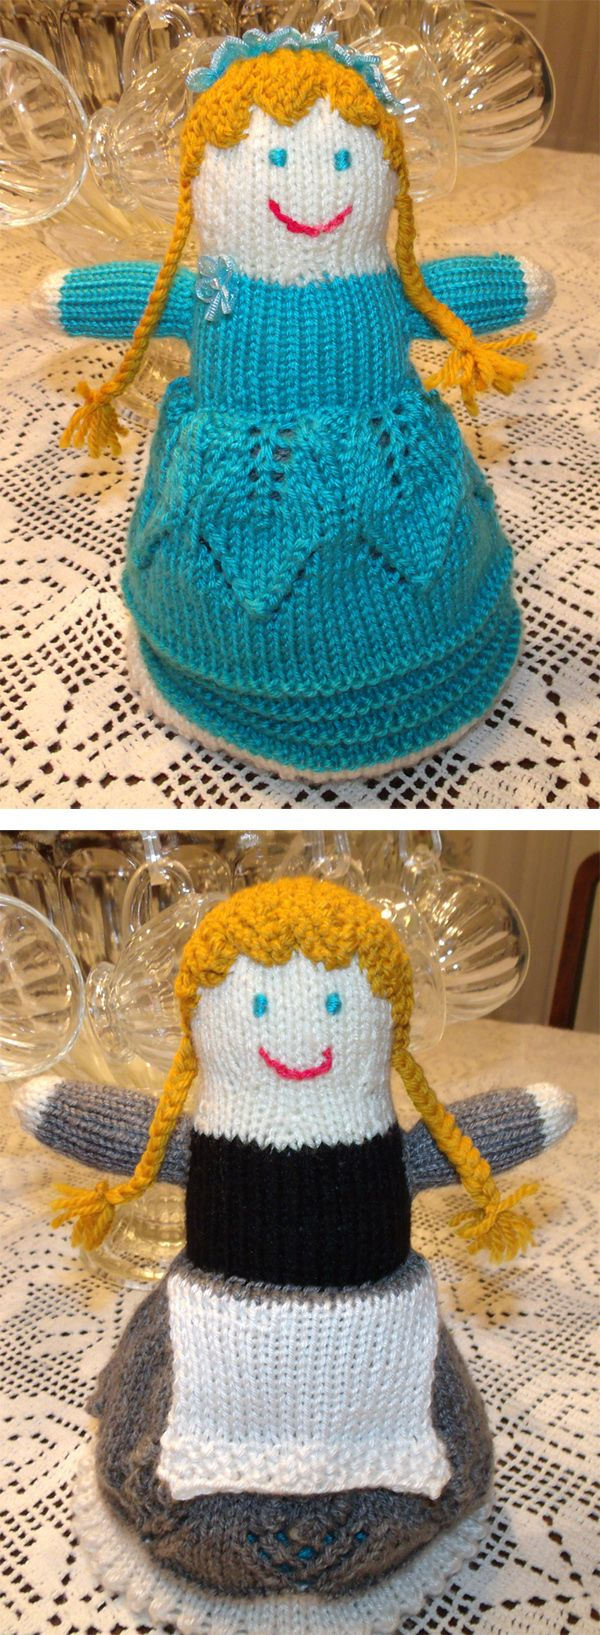 Free Knitting Pattern for Topsy Turvy Doll - This Cinderella flip toy is an adaptation of the pattern from the Bernat Design Studio, which is two dolls in one, just turn the skirt to see the other version. Pictured project by tkrummy2 who adapted the colors for Cinderella before and at the ball, added a square apron for pre-ball Cindy and a ribbon tiara for the ball gown version.